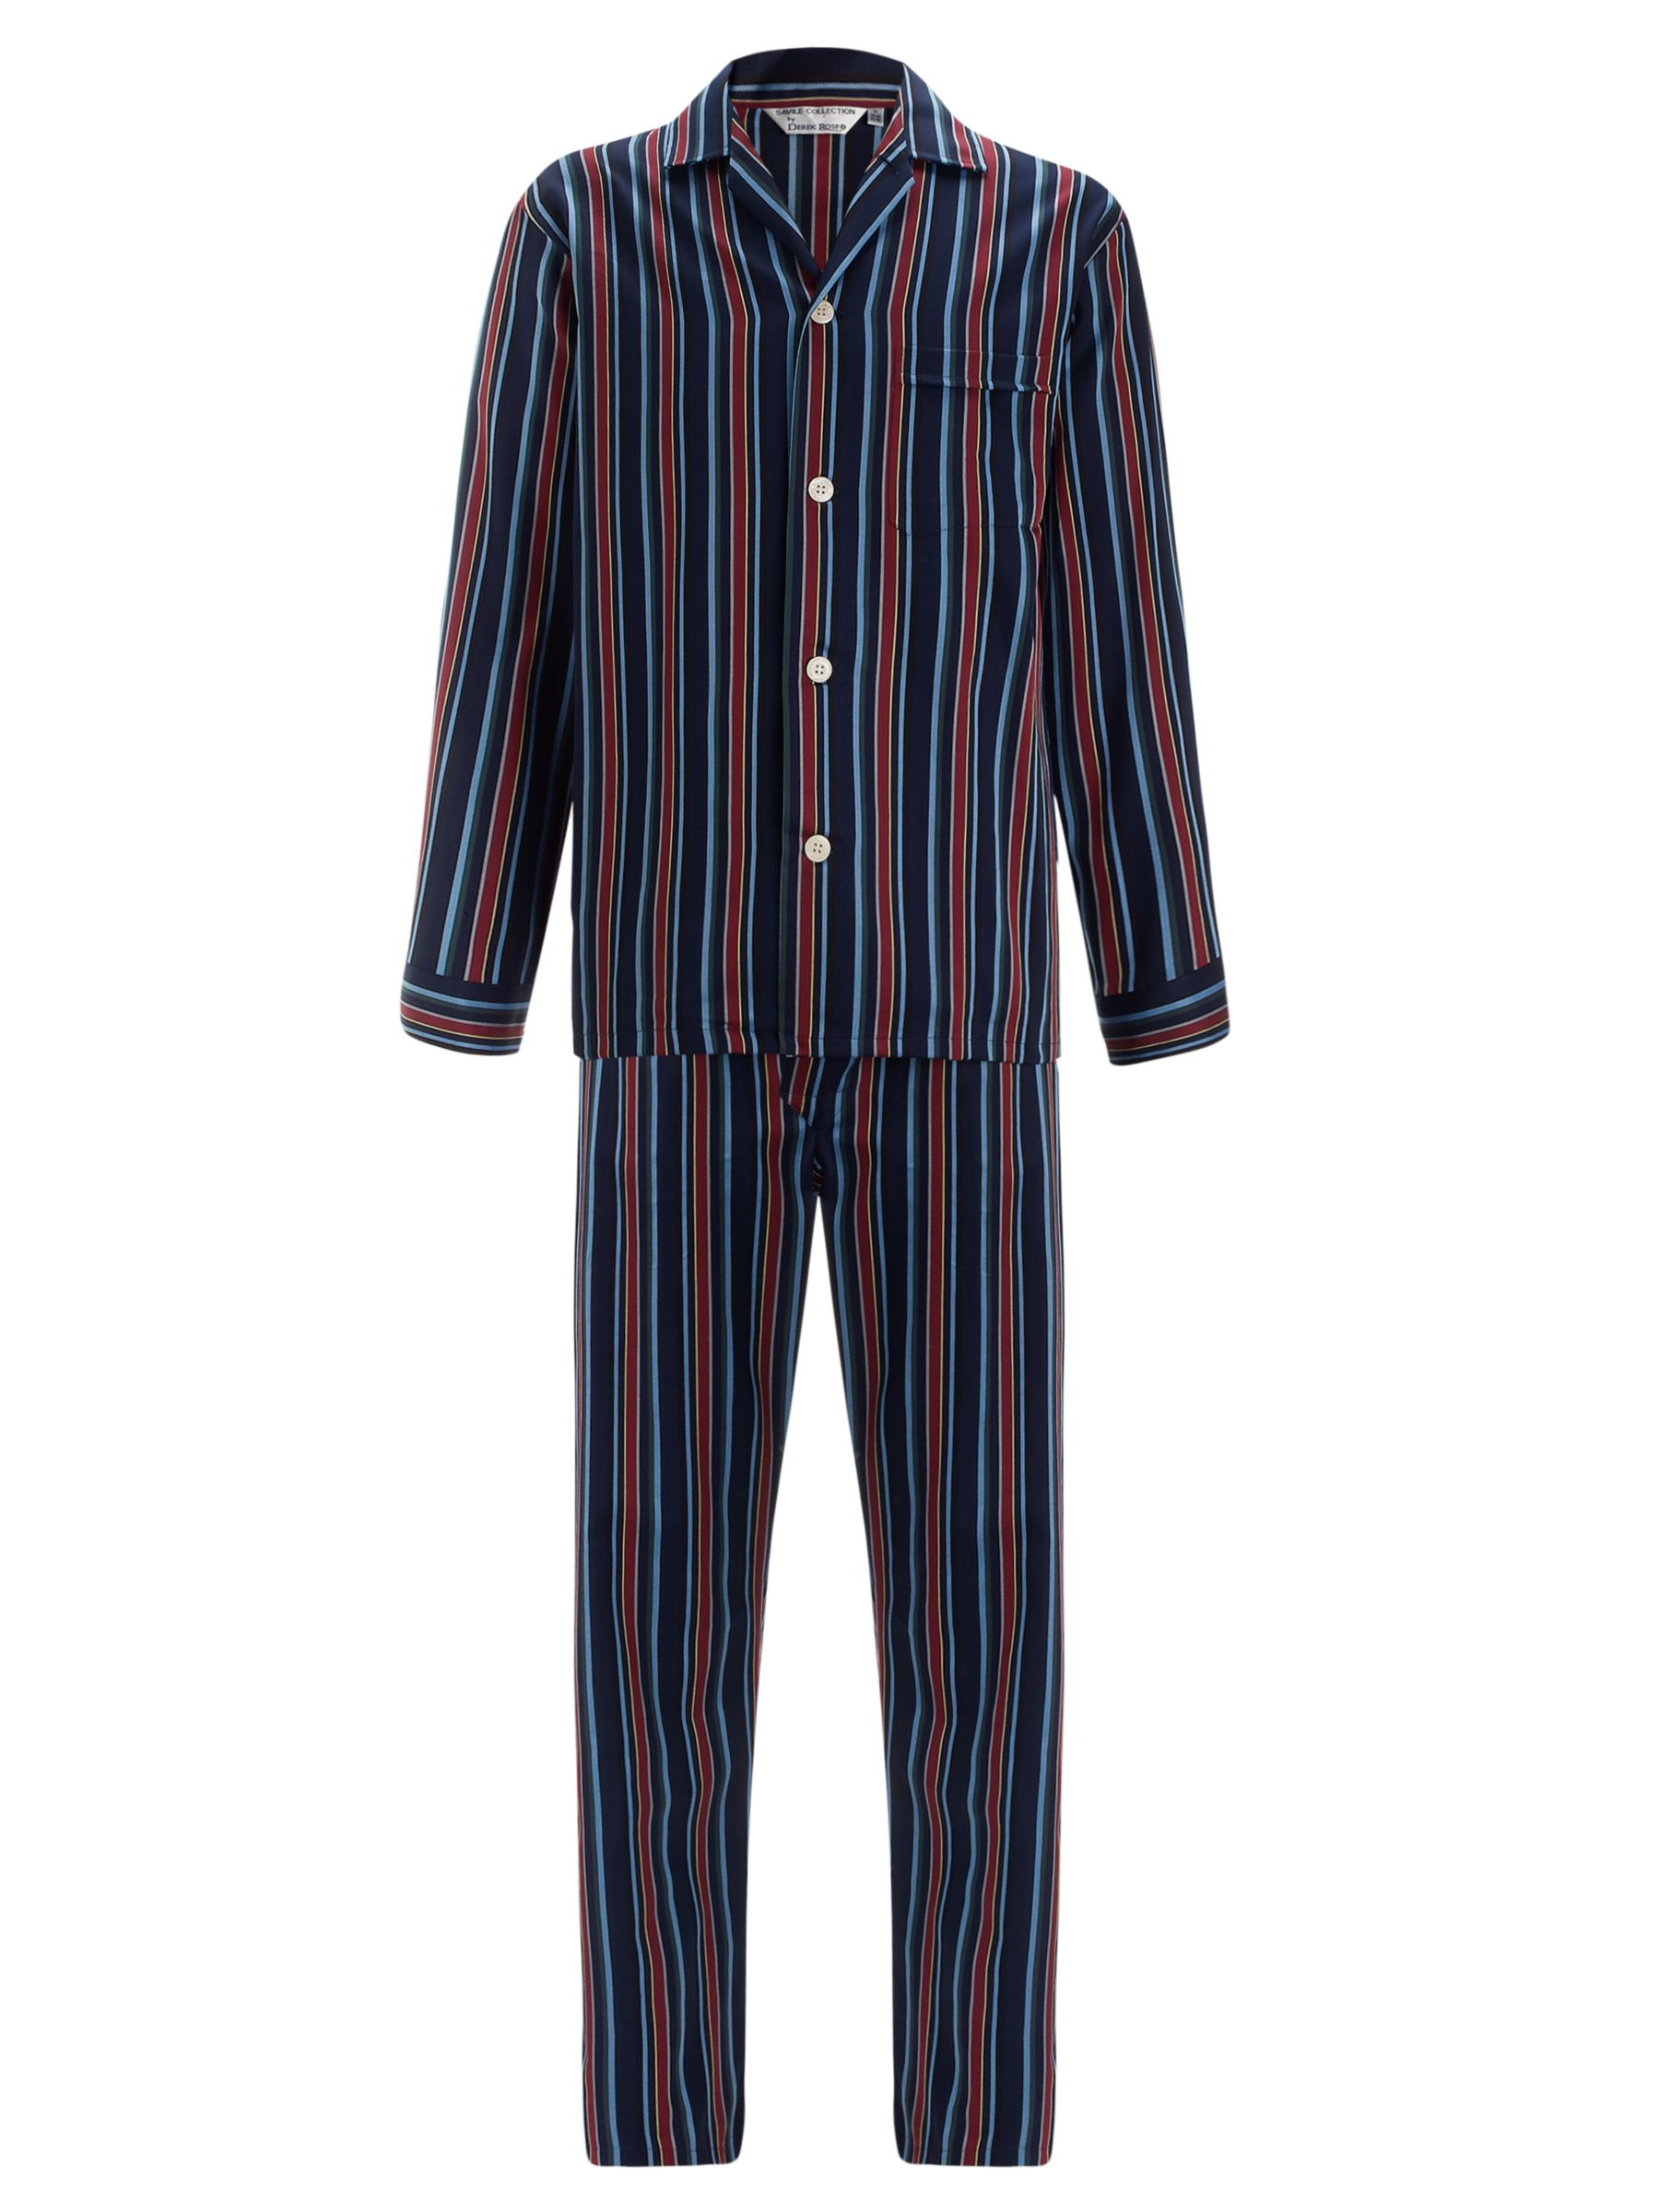 Derek Rose Savile Row Stripe Cotton Pyjamas